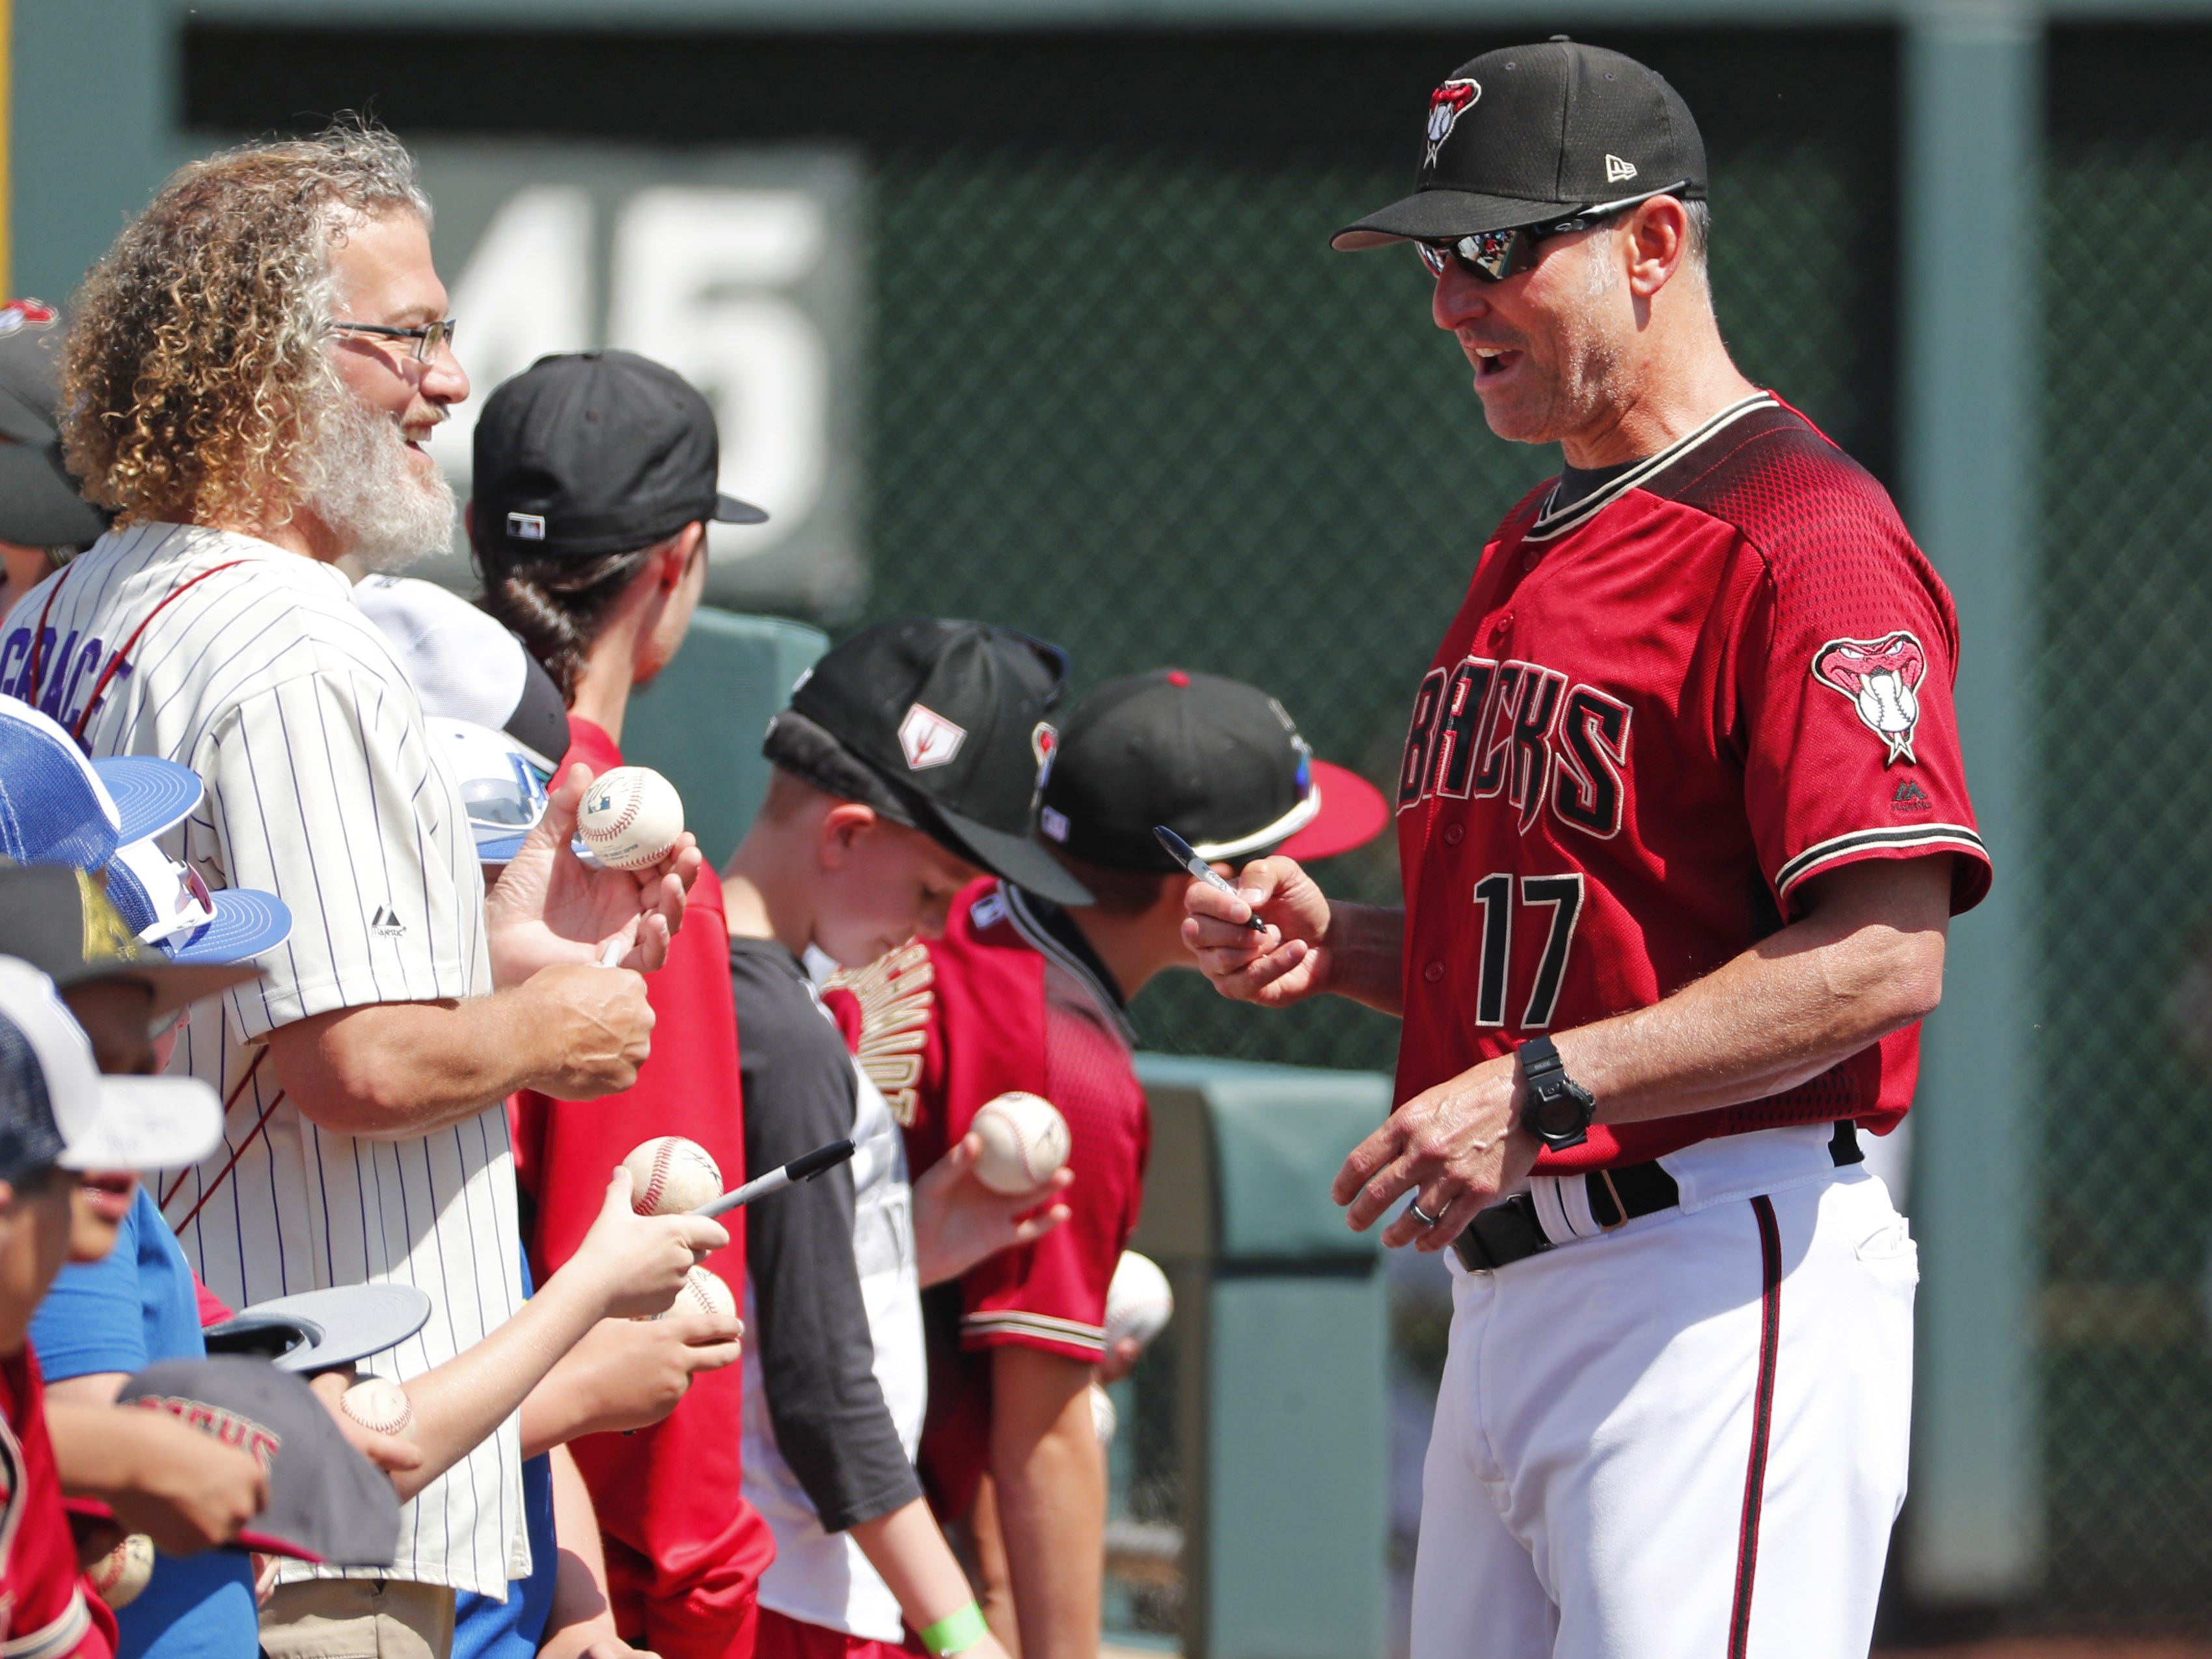 Arizona Diamondbacks manager Torey Lovullo (17) signs autographs before a spring training game against the Milwaukee Brewers at Salt River Fields at Talking Stick March 24, 2019.